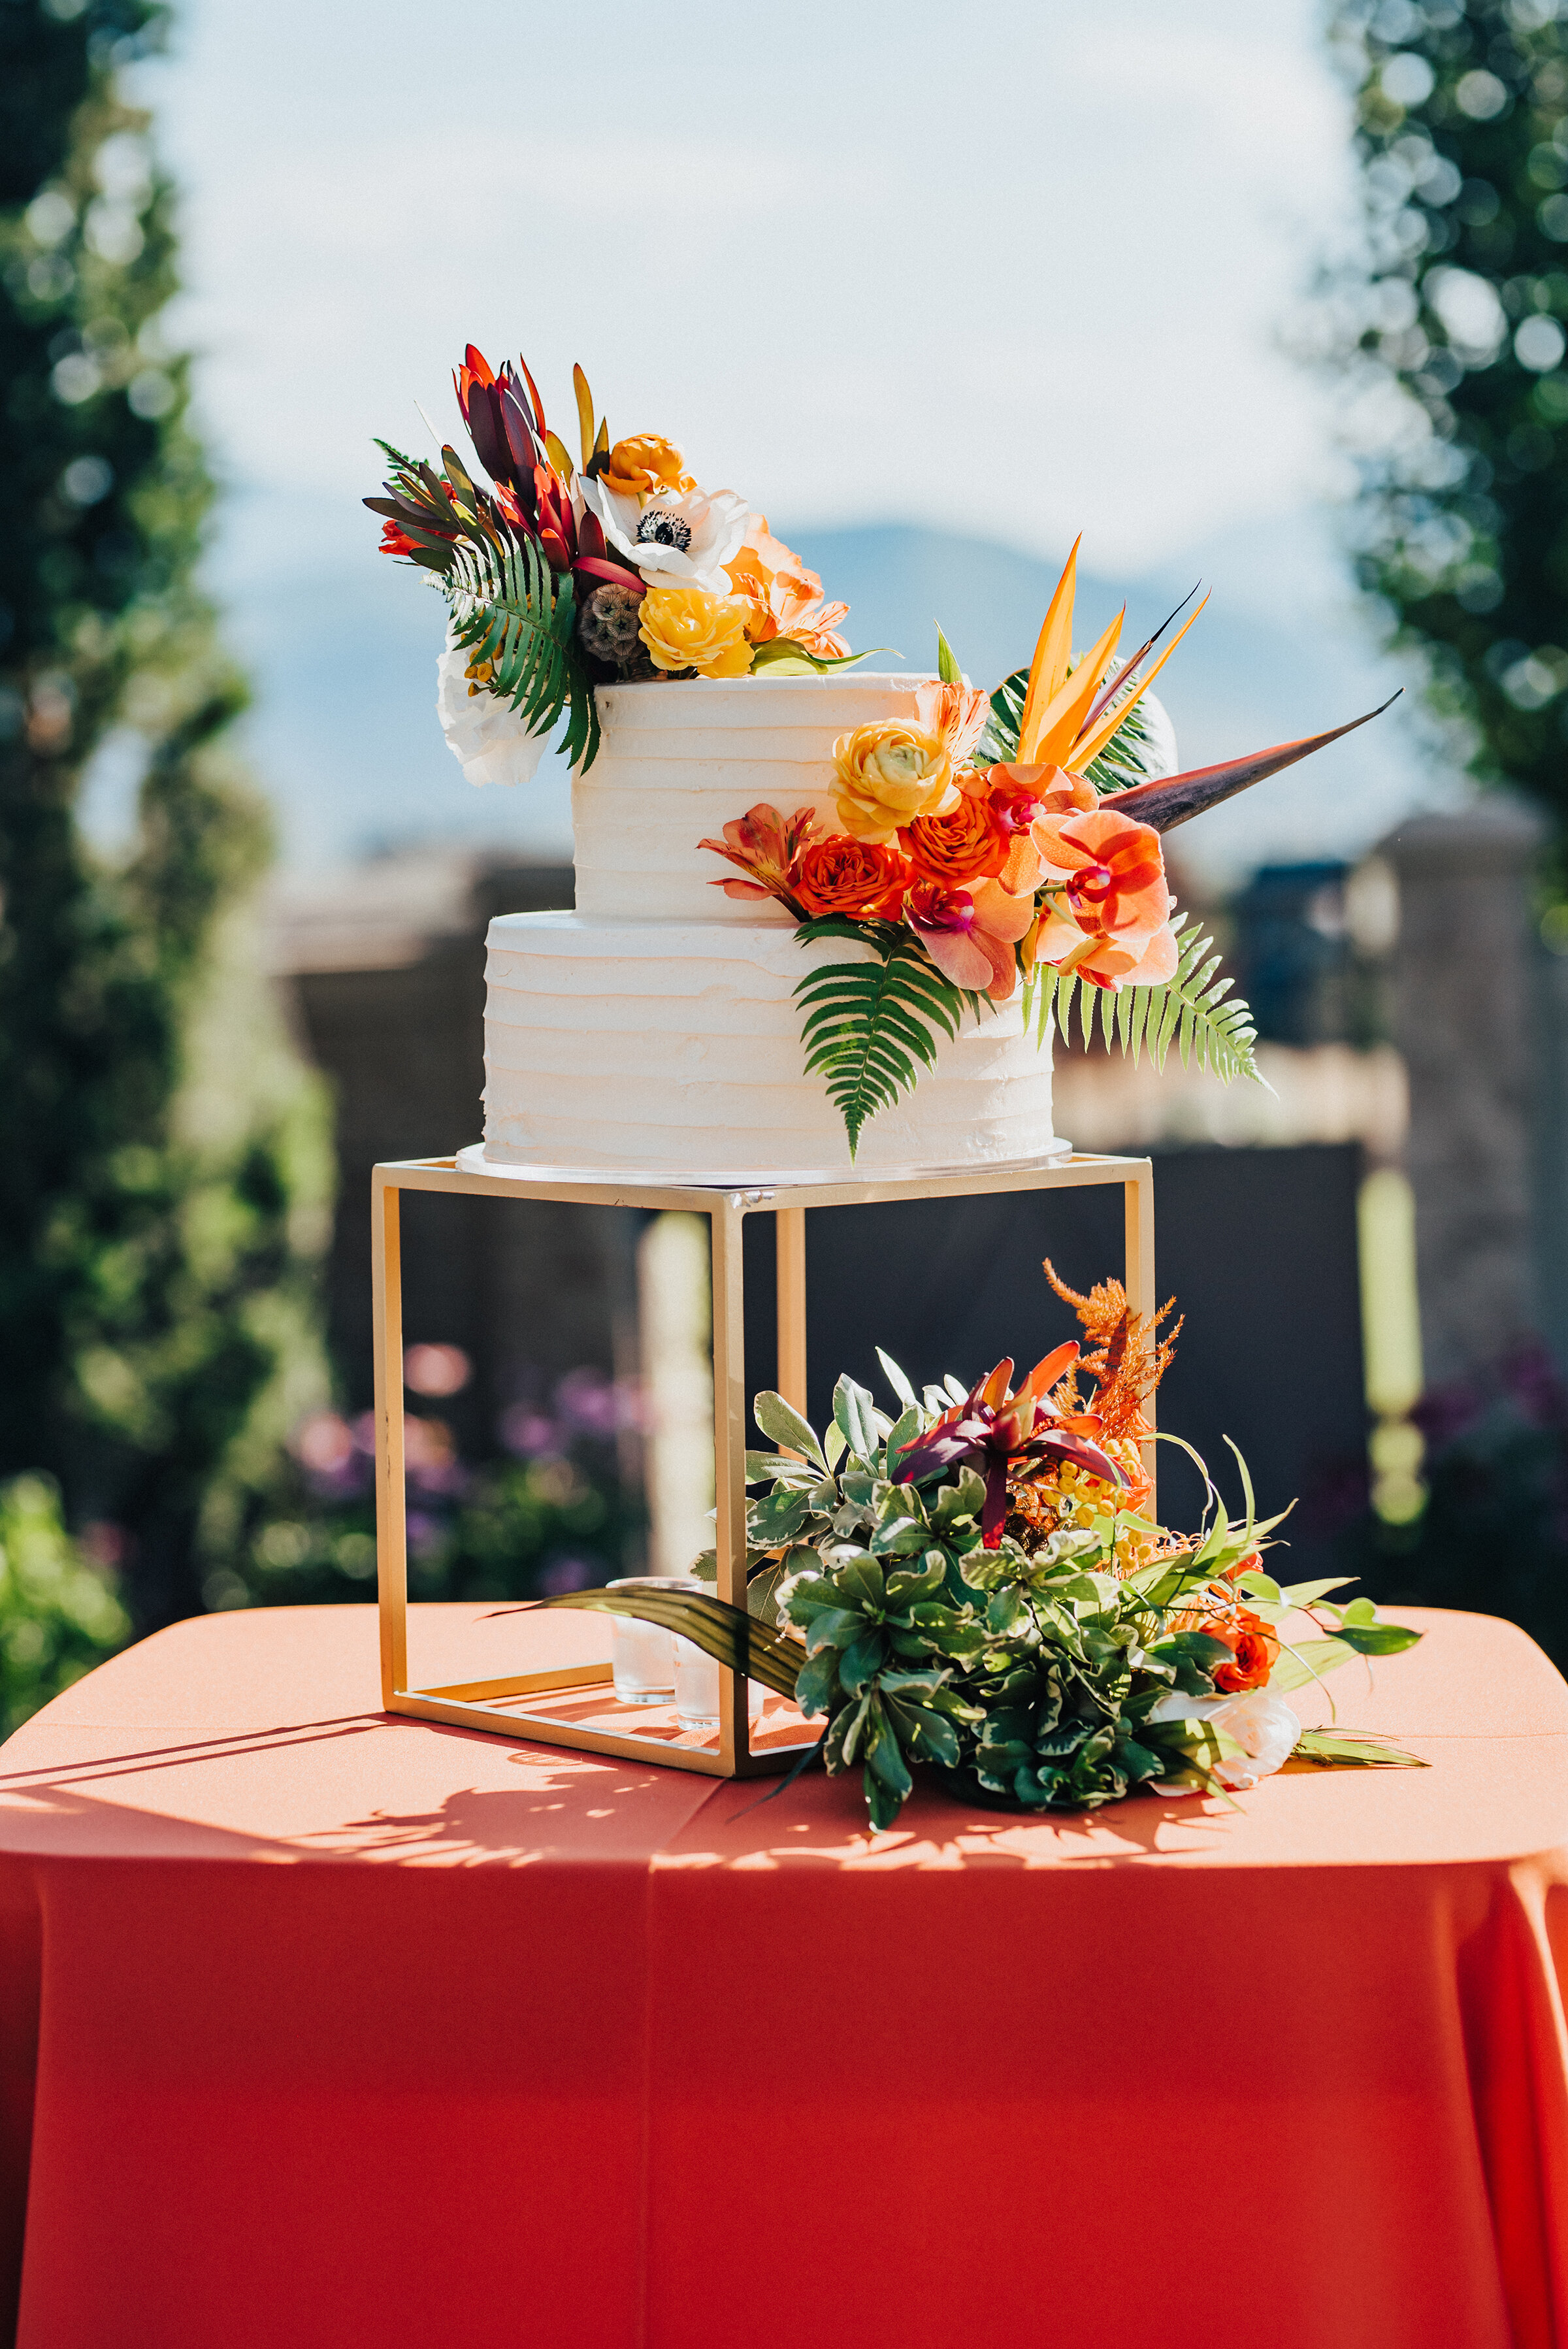 Gorgeous two-tier wedding cake with floral accents displayed at this lovely backyard wedding in Park City. Kristi Alyse Photography Logan Utah photographer Park City wedding photographer Drive-Thru wedding COVID wedding neon signs socially distant wedding bride and groom wedding cake #kristialysephotography #weddingphotographer #utahweddings #parkcity #utahbrides #drivethruwedding #covidwedding #LoganUtahphotographer #utahweddingphotographer #weddingcake